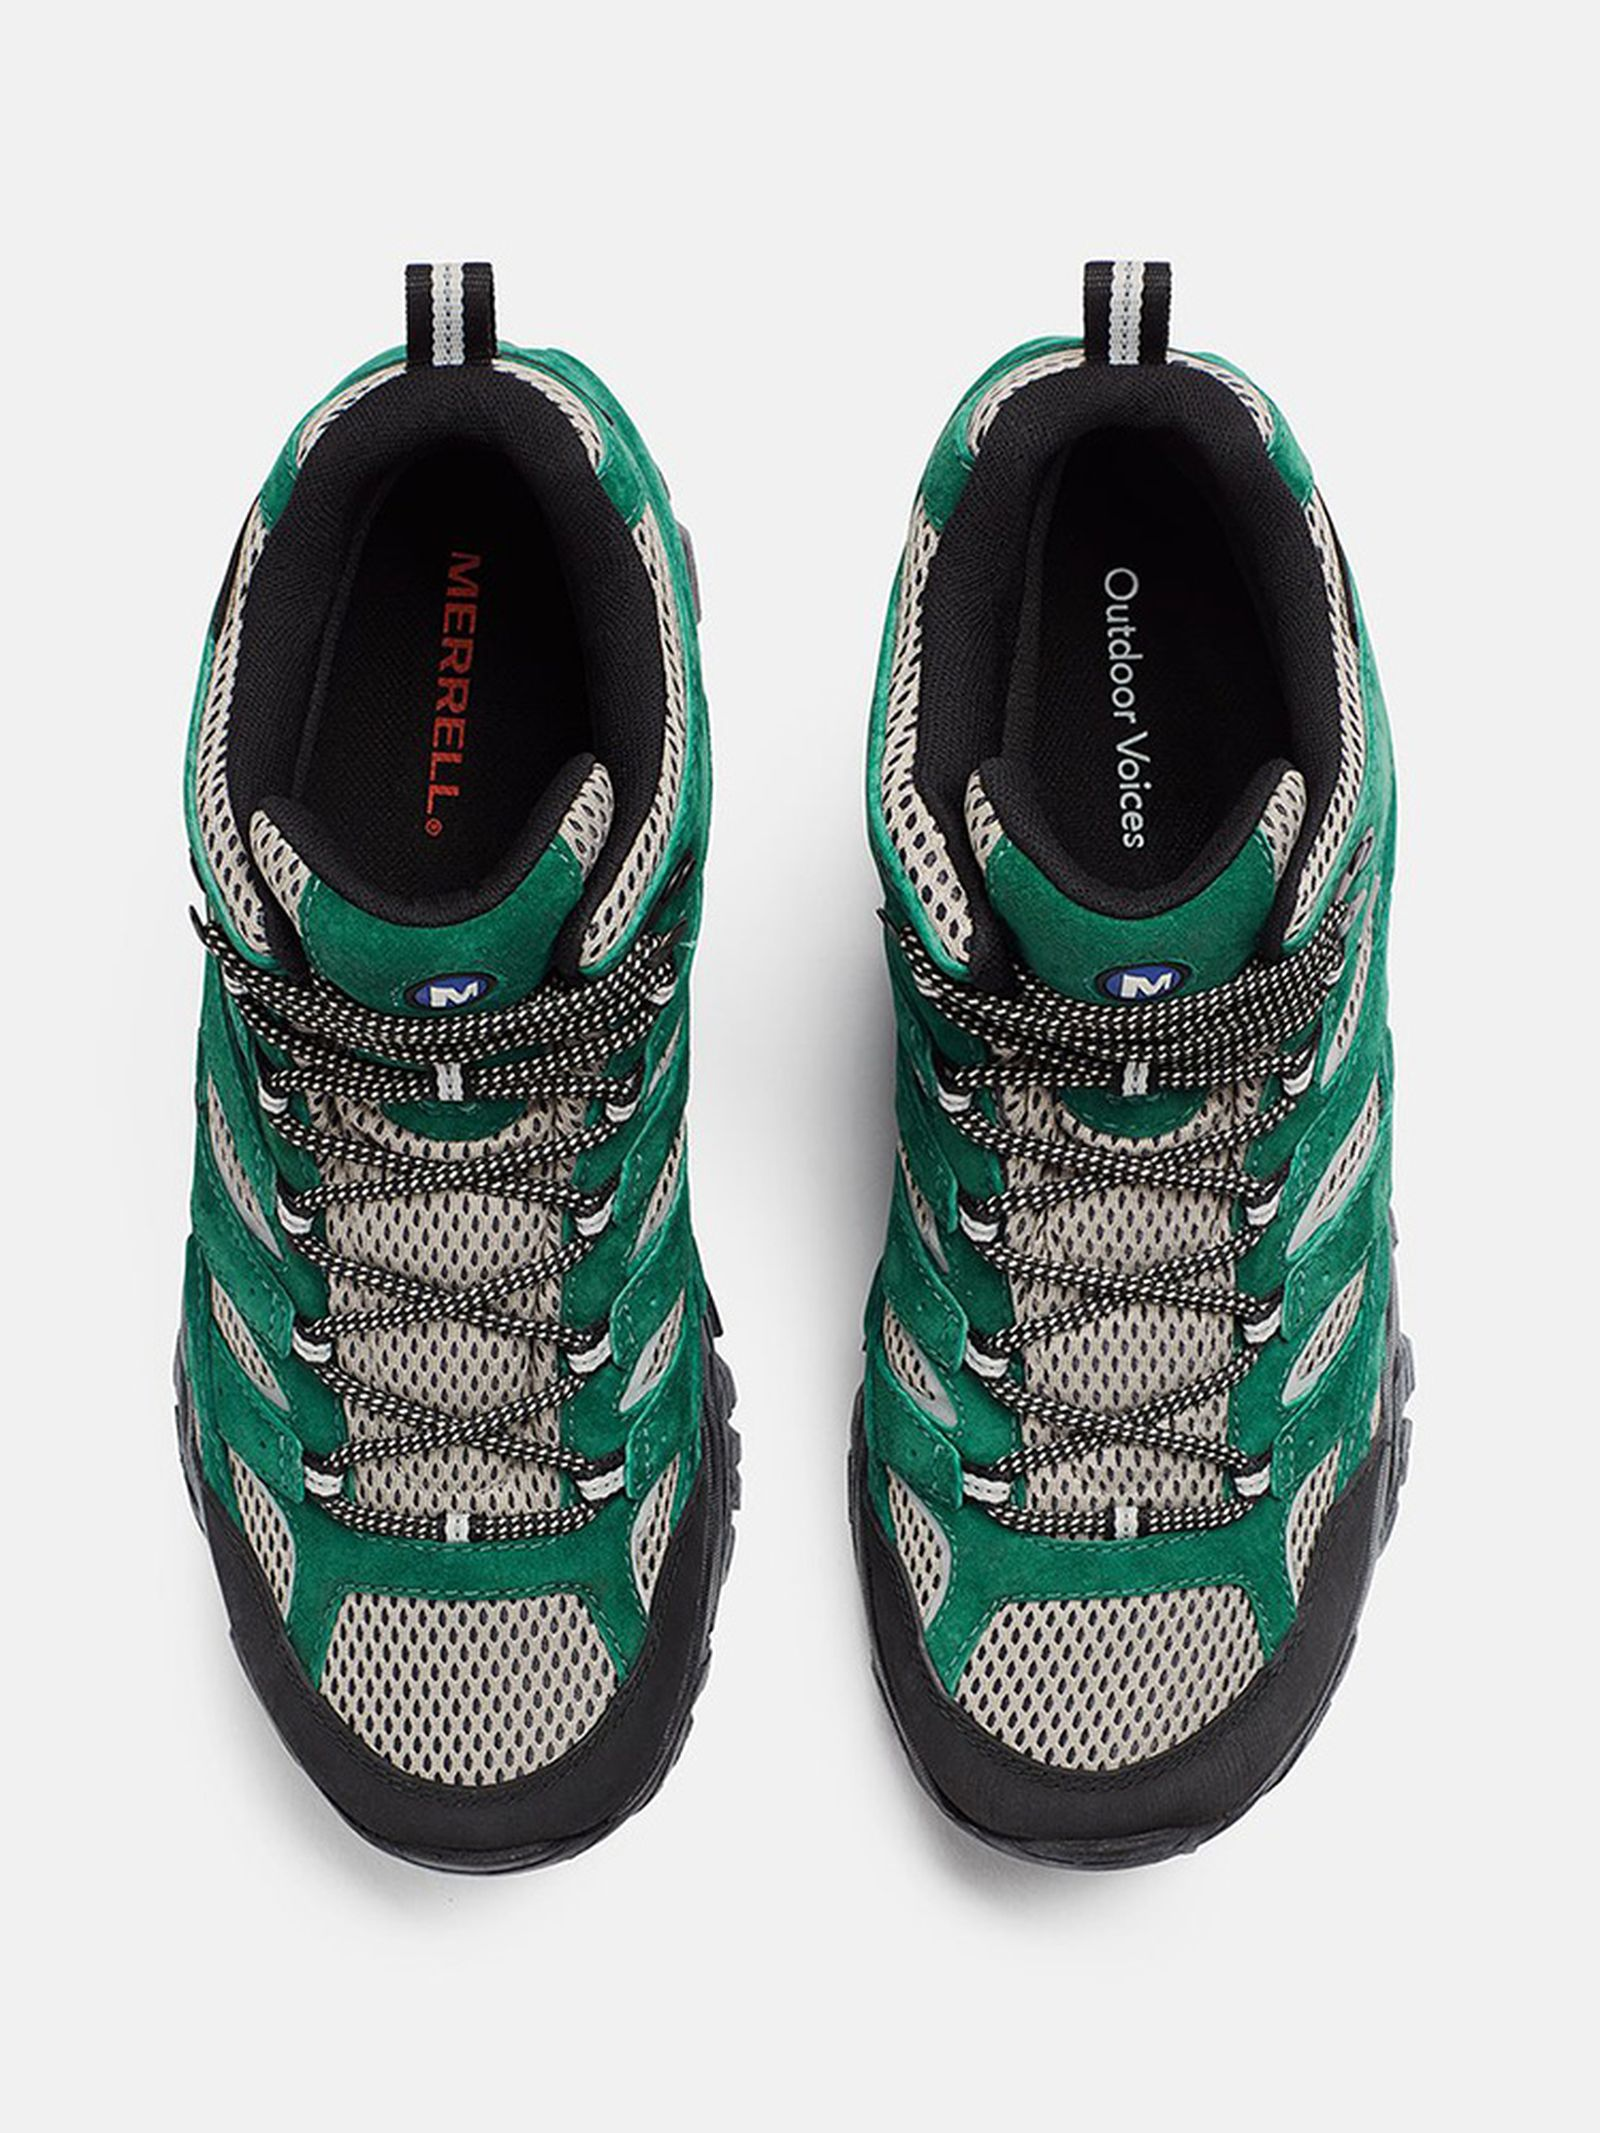 Outdoor Voices x Merrell Moab 2 Mid green